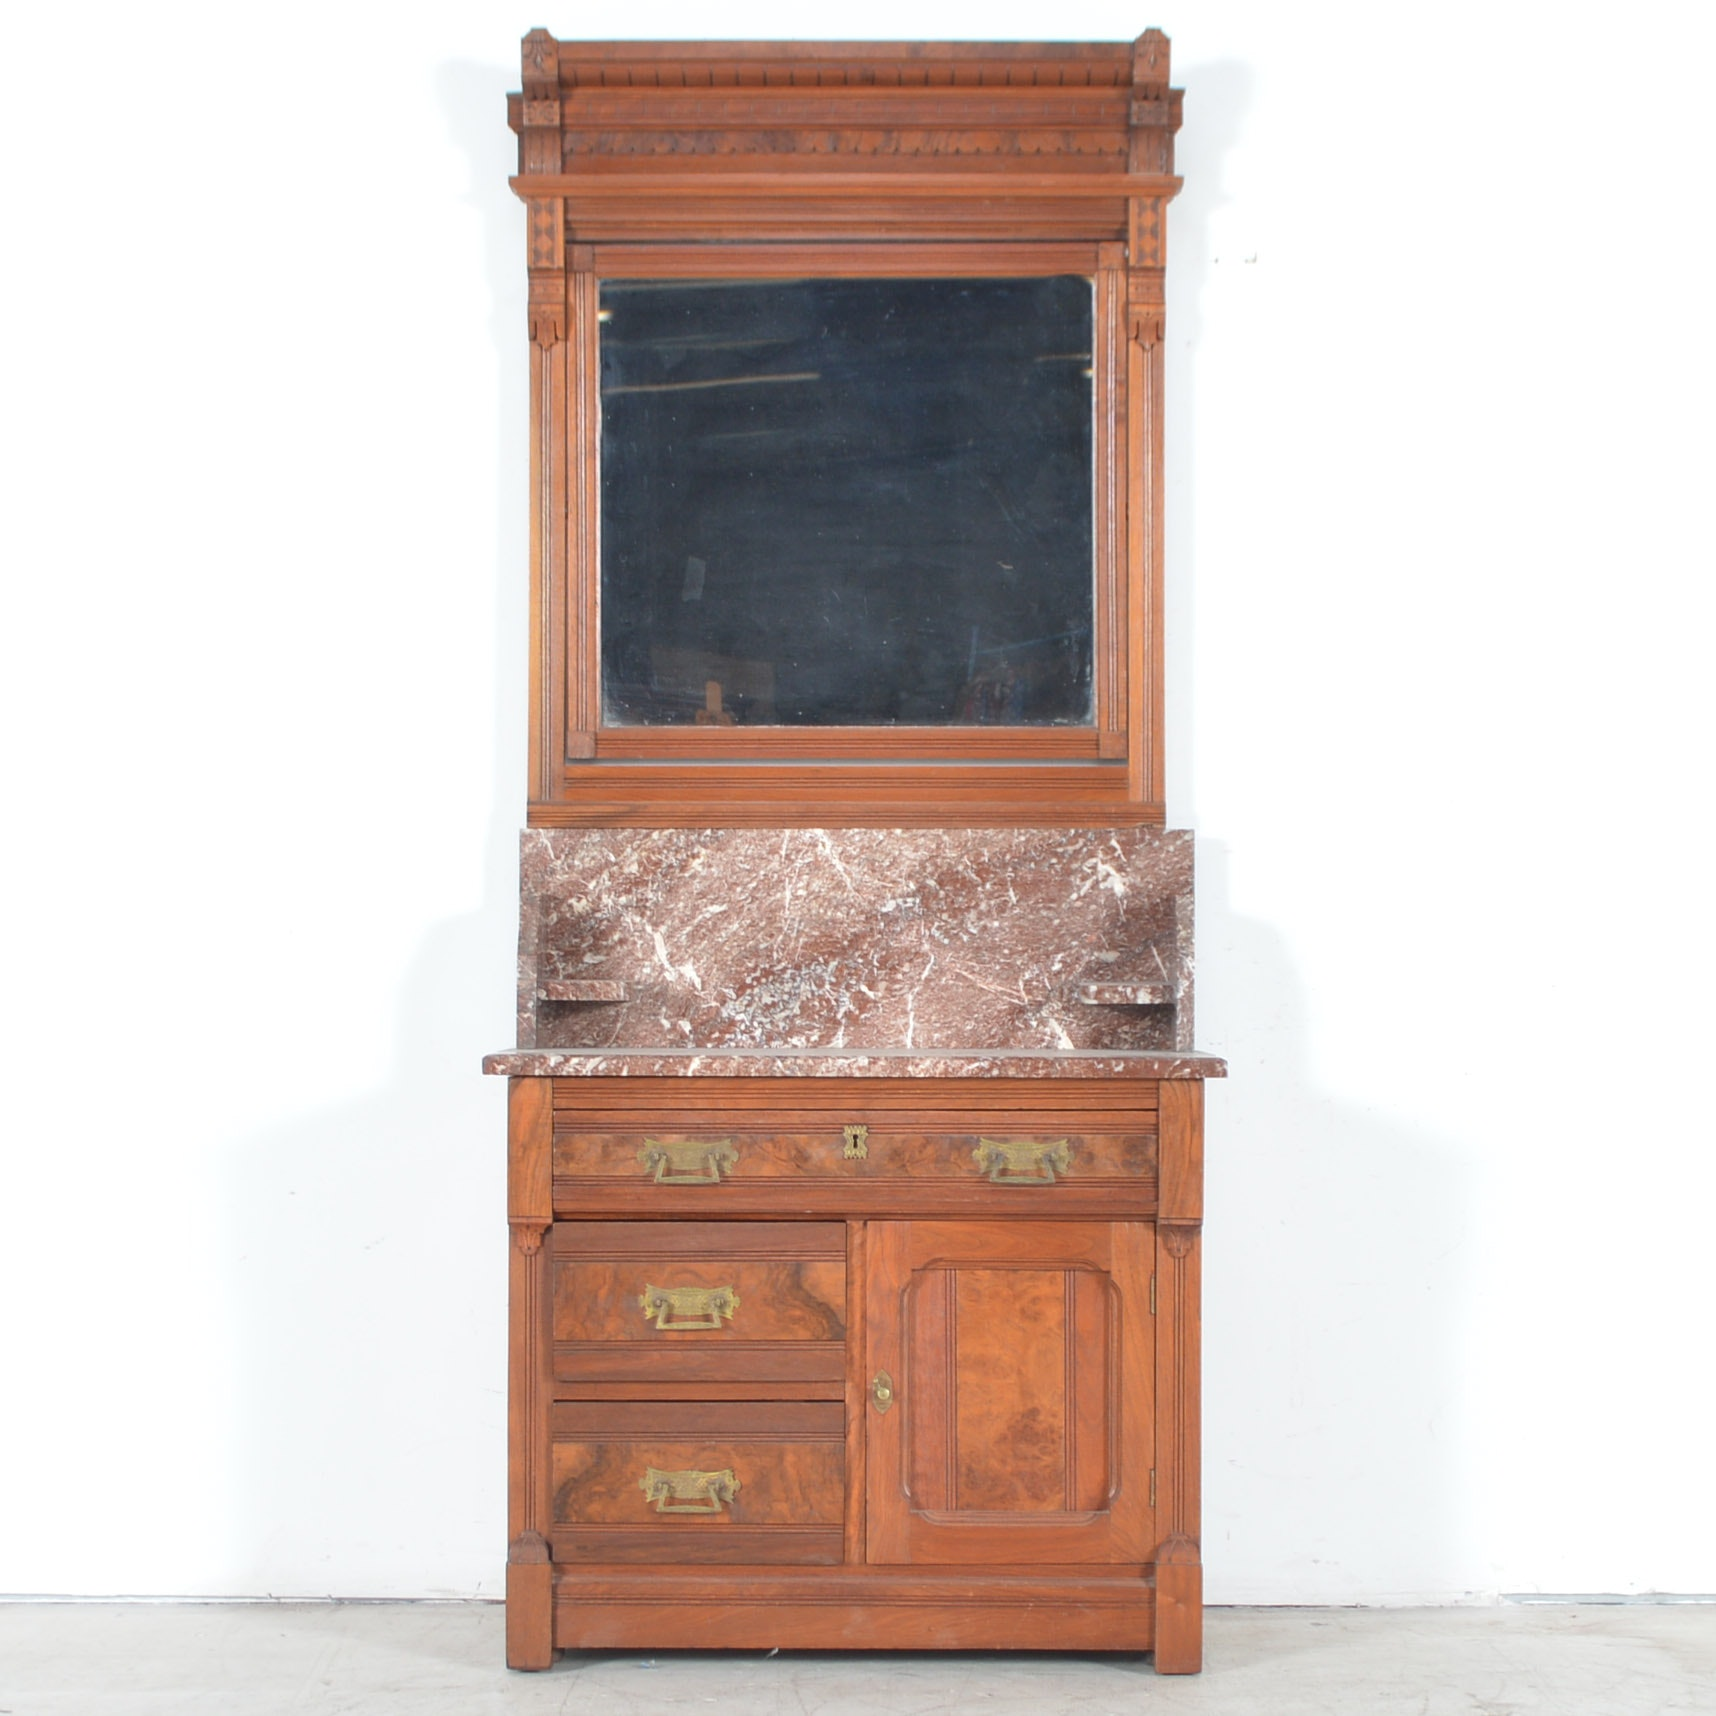 Antique Eastlake Marble-Topped Washstand with Mirror